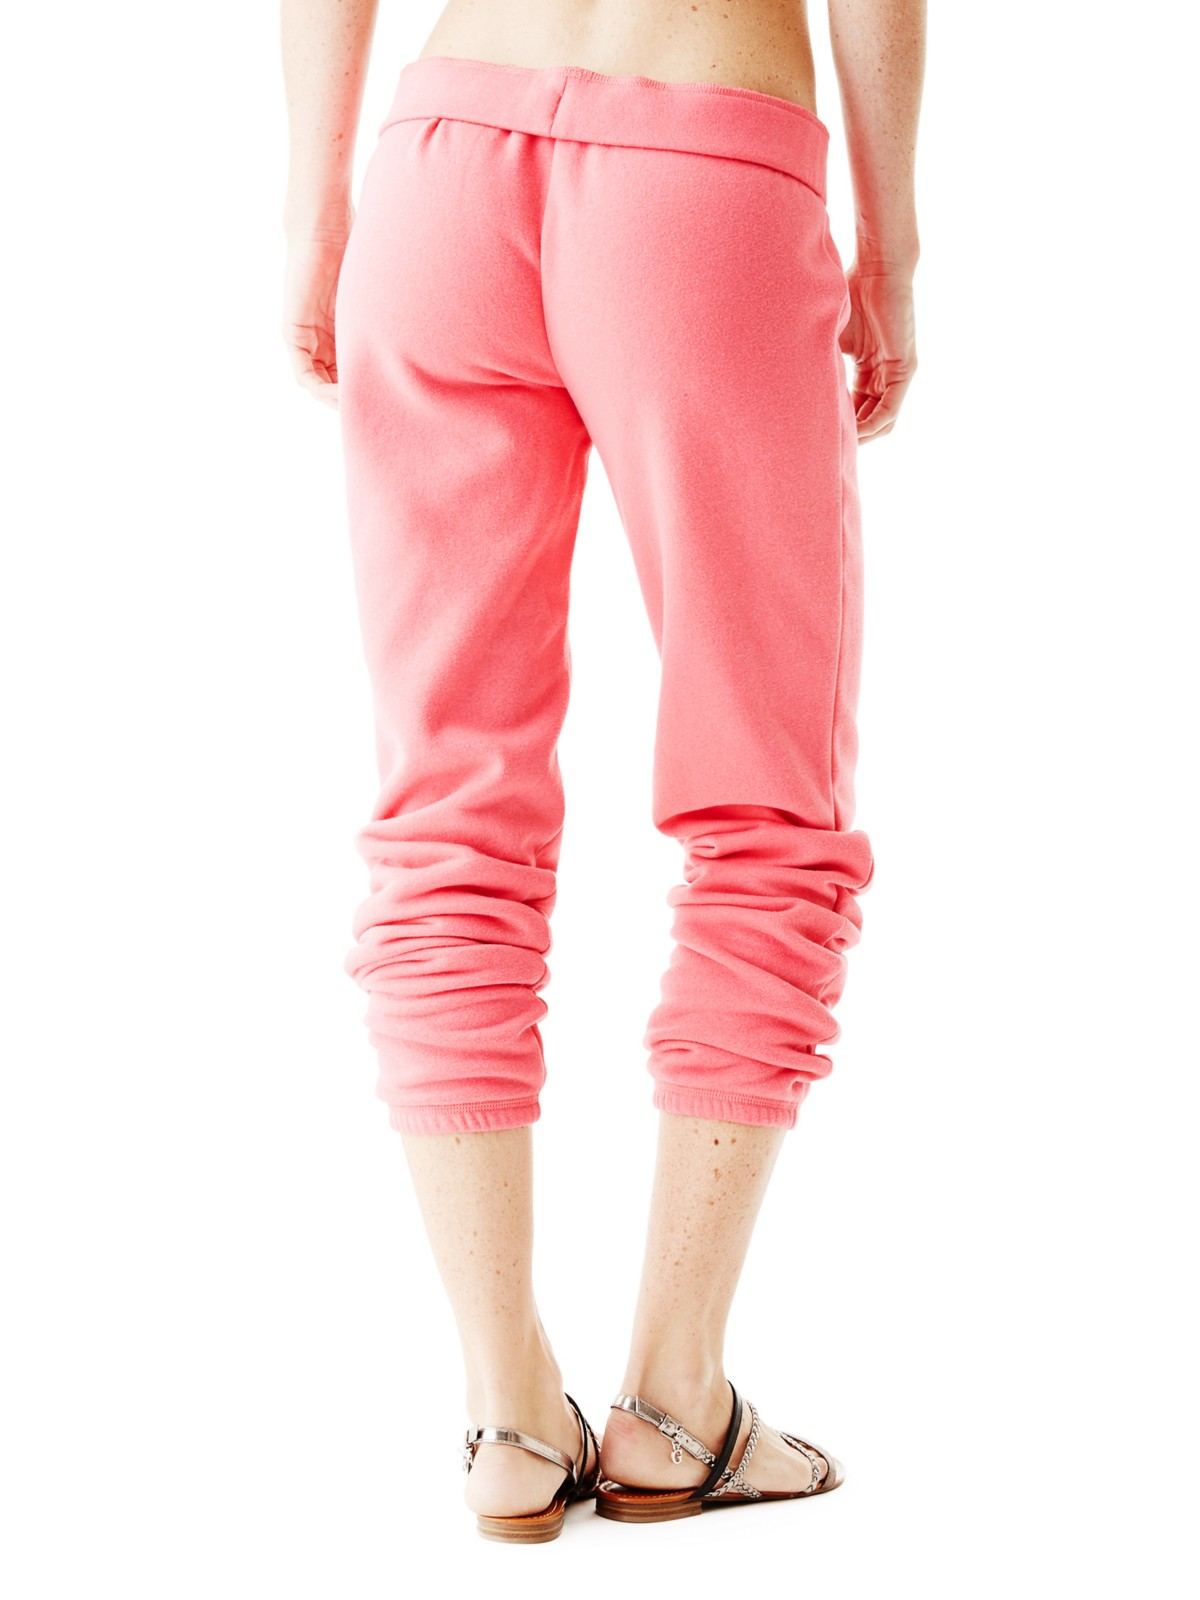 Boyfriend Fit Women's Sweatpants. Just Love % Cotton Jersey Women Plaid Pajama Pants/Sleepwear. by Just Love. $ $ 12 99 Prime. FREE Shipping on eligible orders. Some sizes/colors are Prime eligible. out of 5 stars CYZ Women's % Cotton Super Soft Flannel Plaid Pajama/Louge Pants.